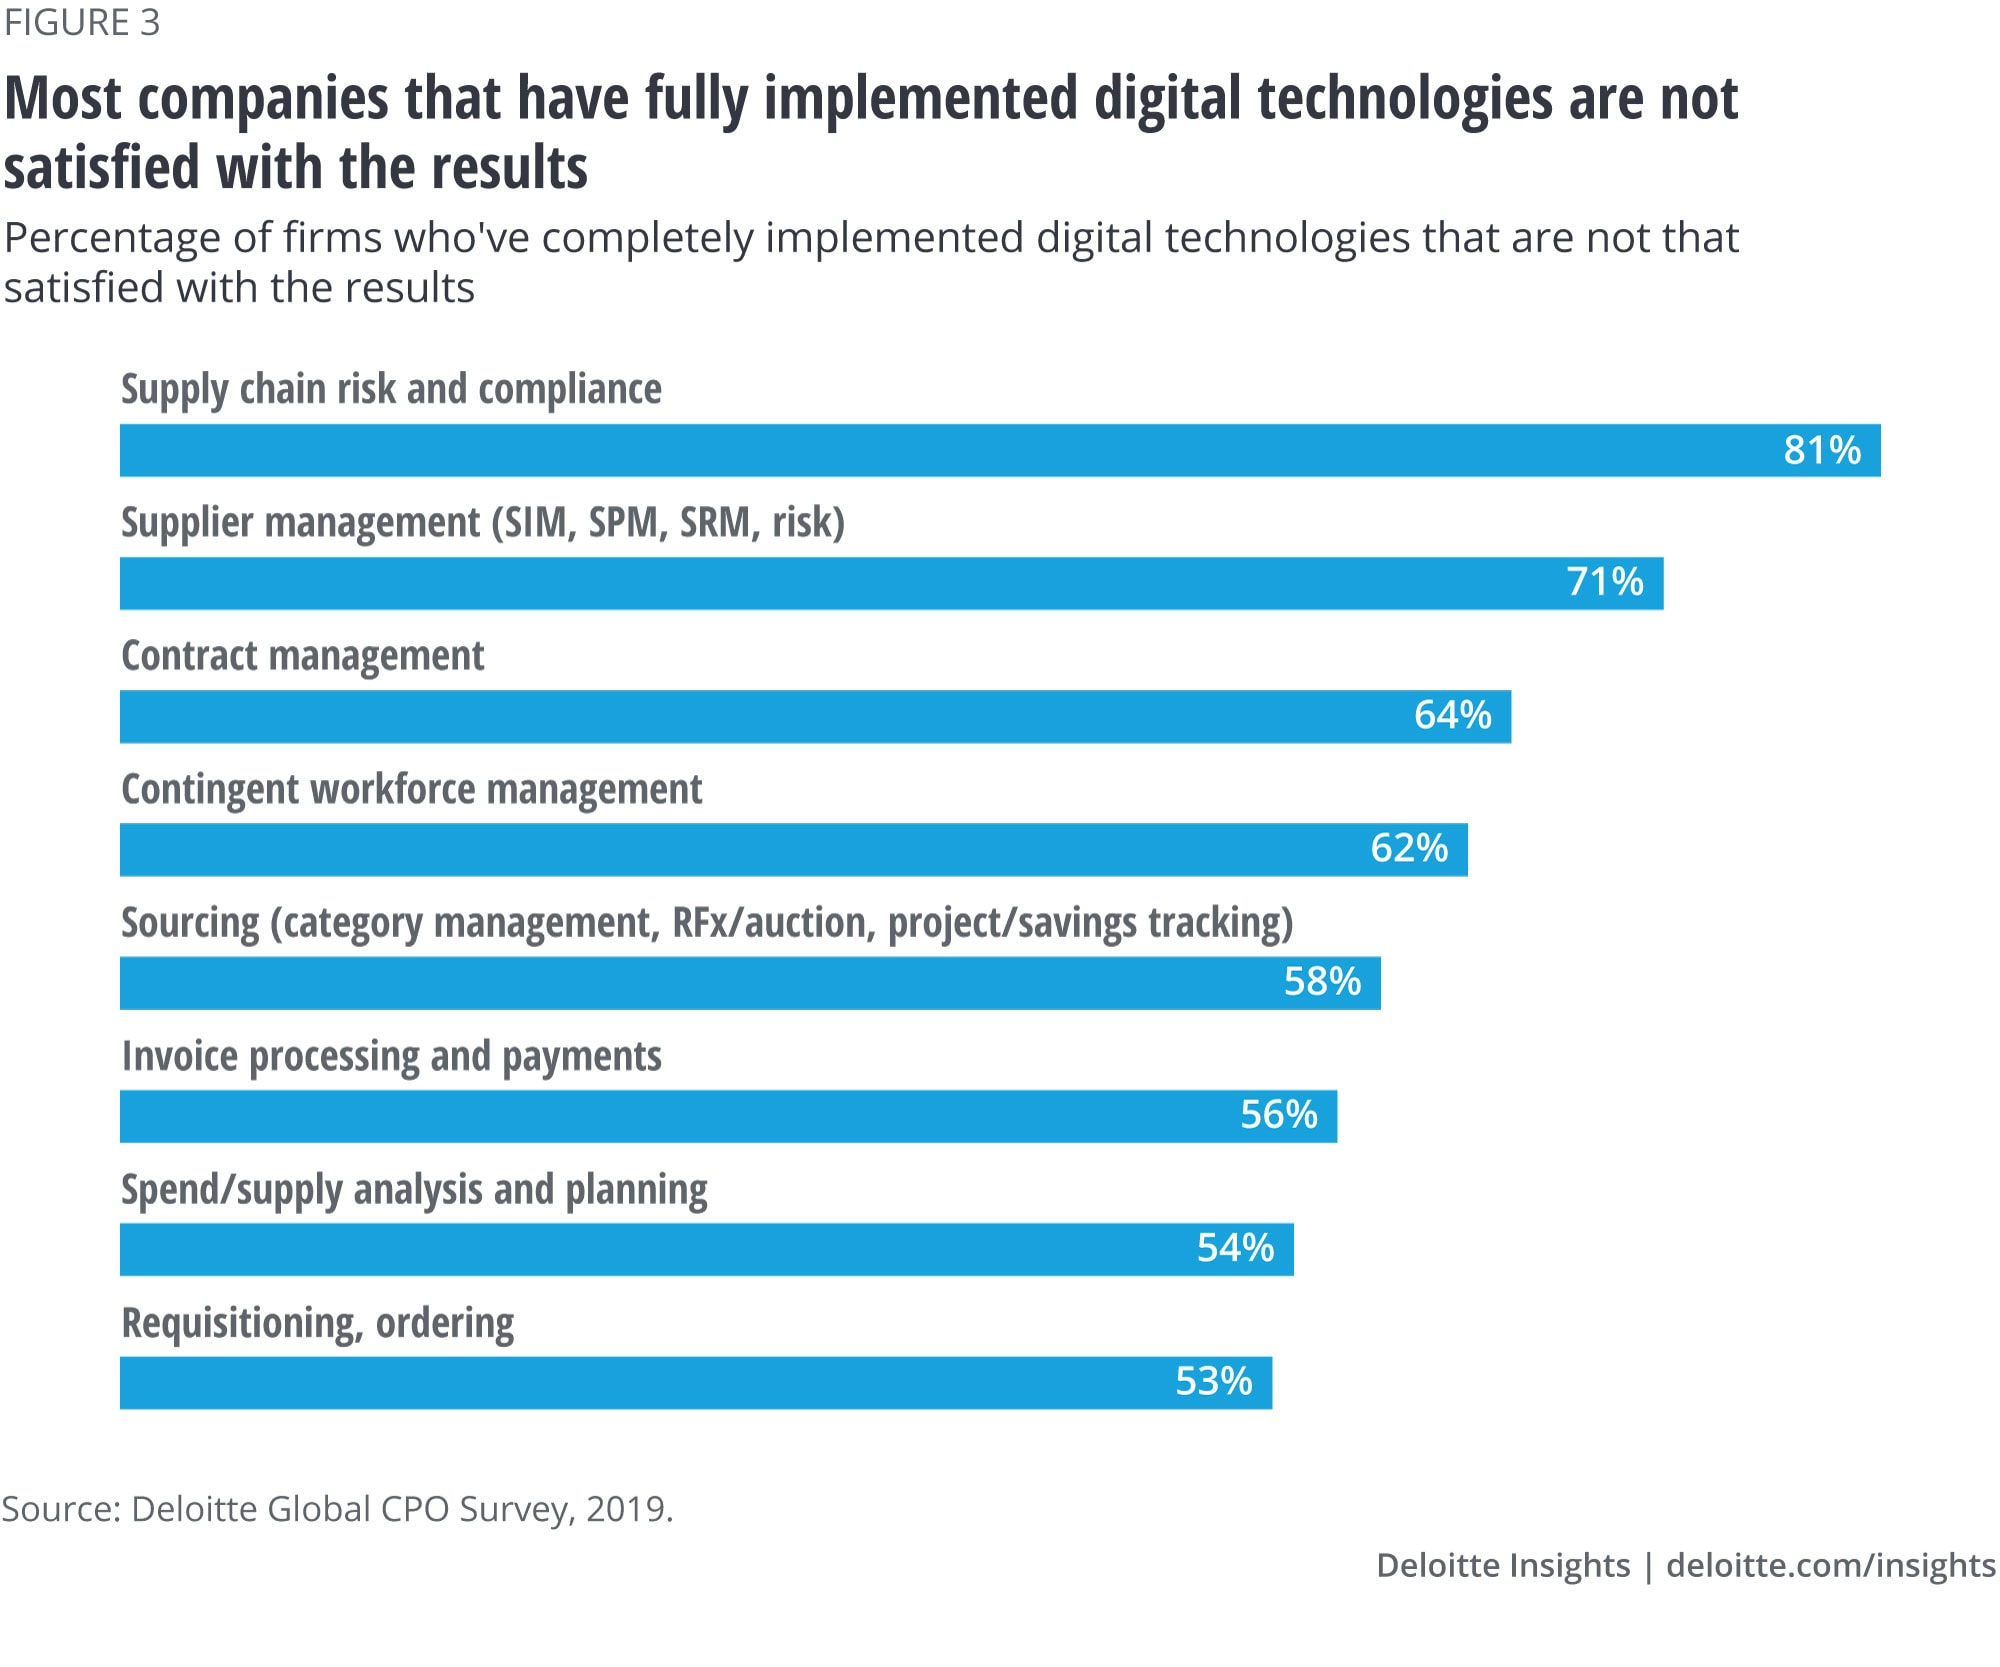 Most companies that have fully implemented digital technologies are not satisfied with the results